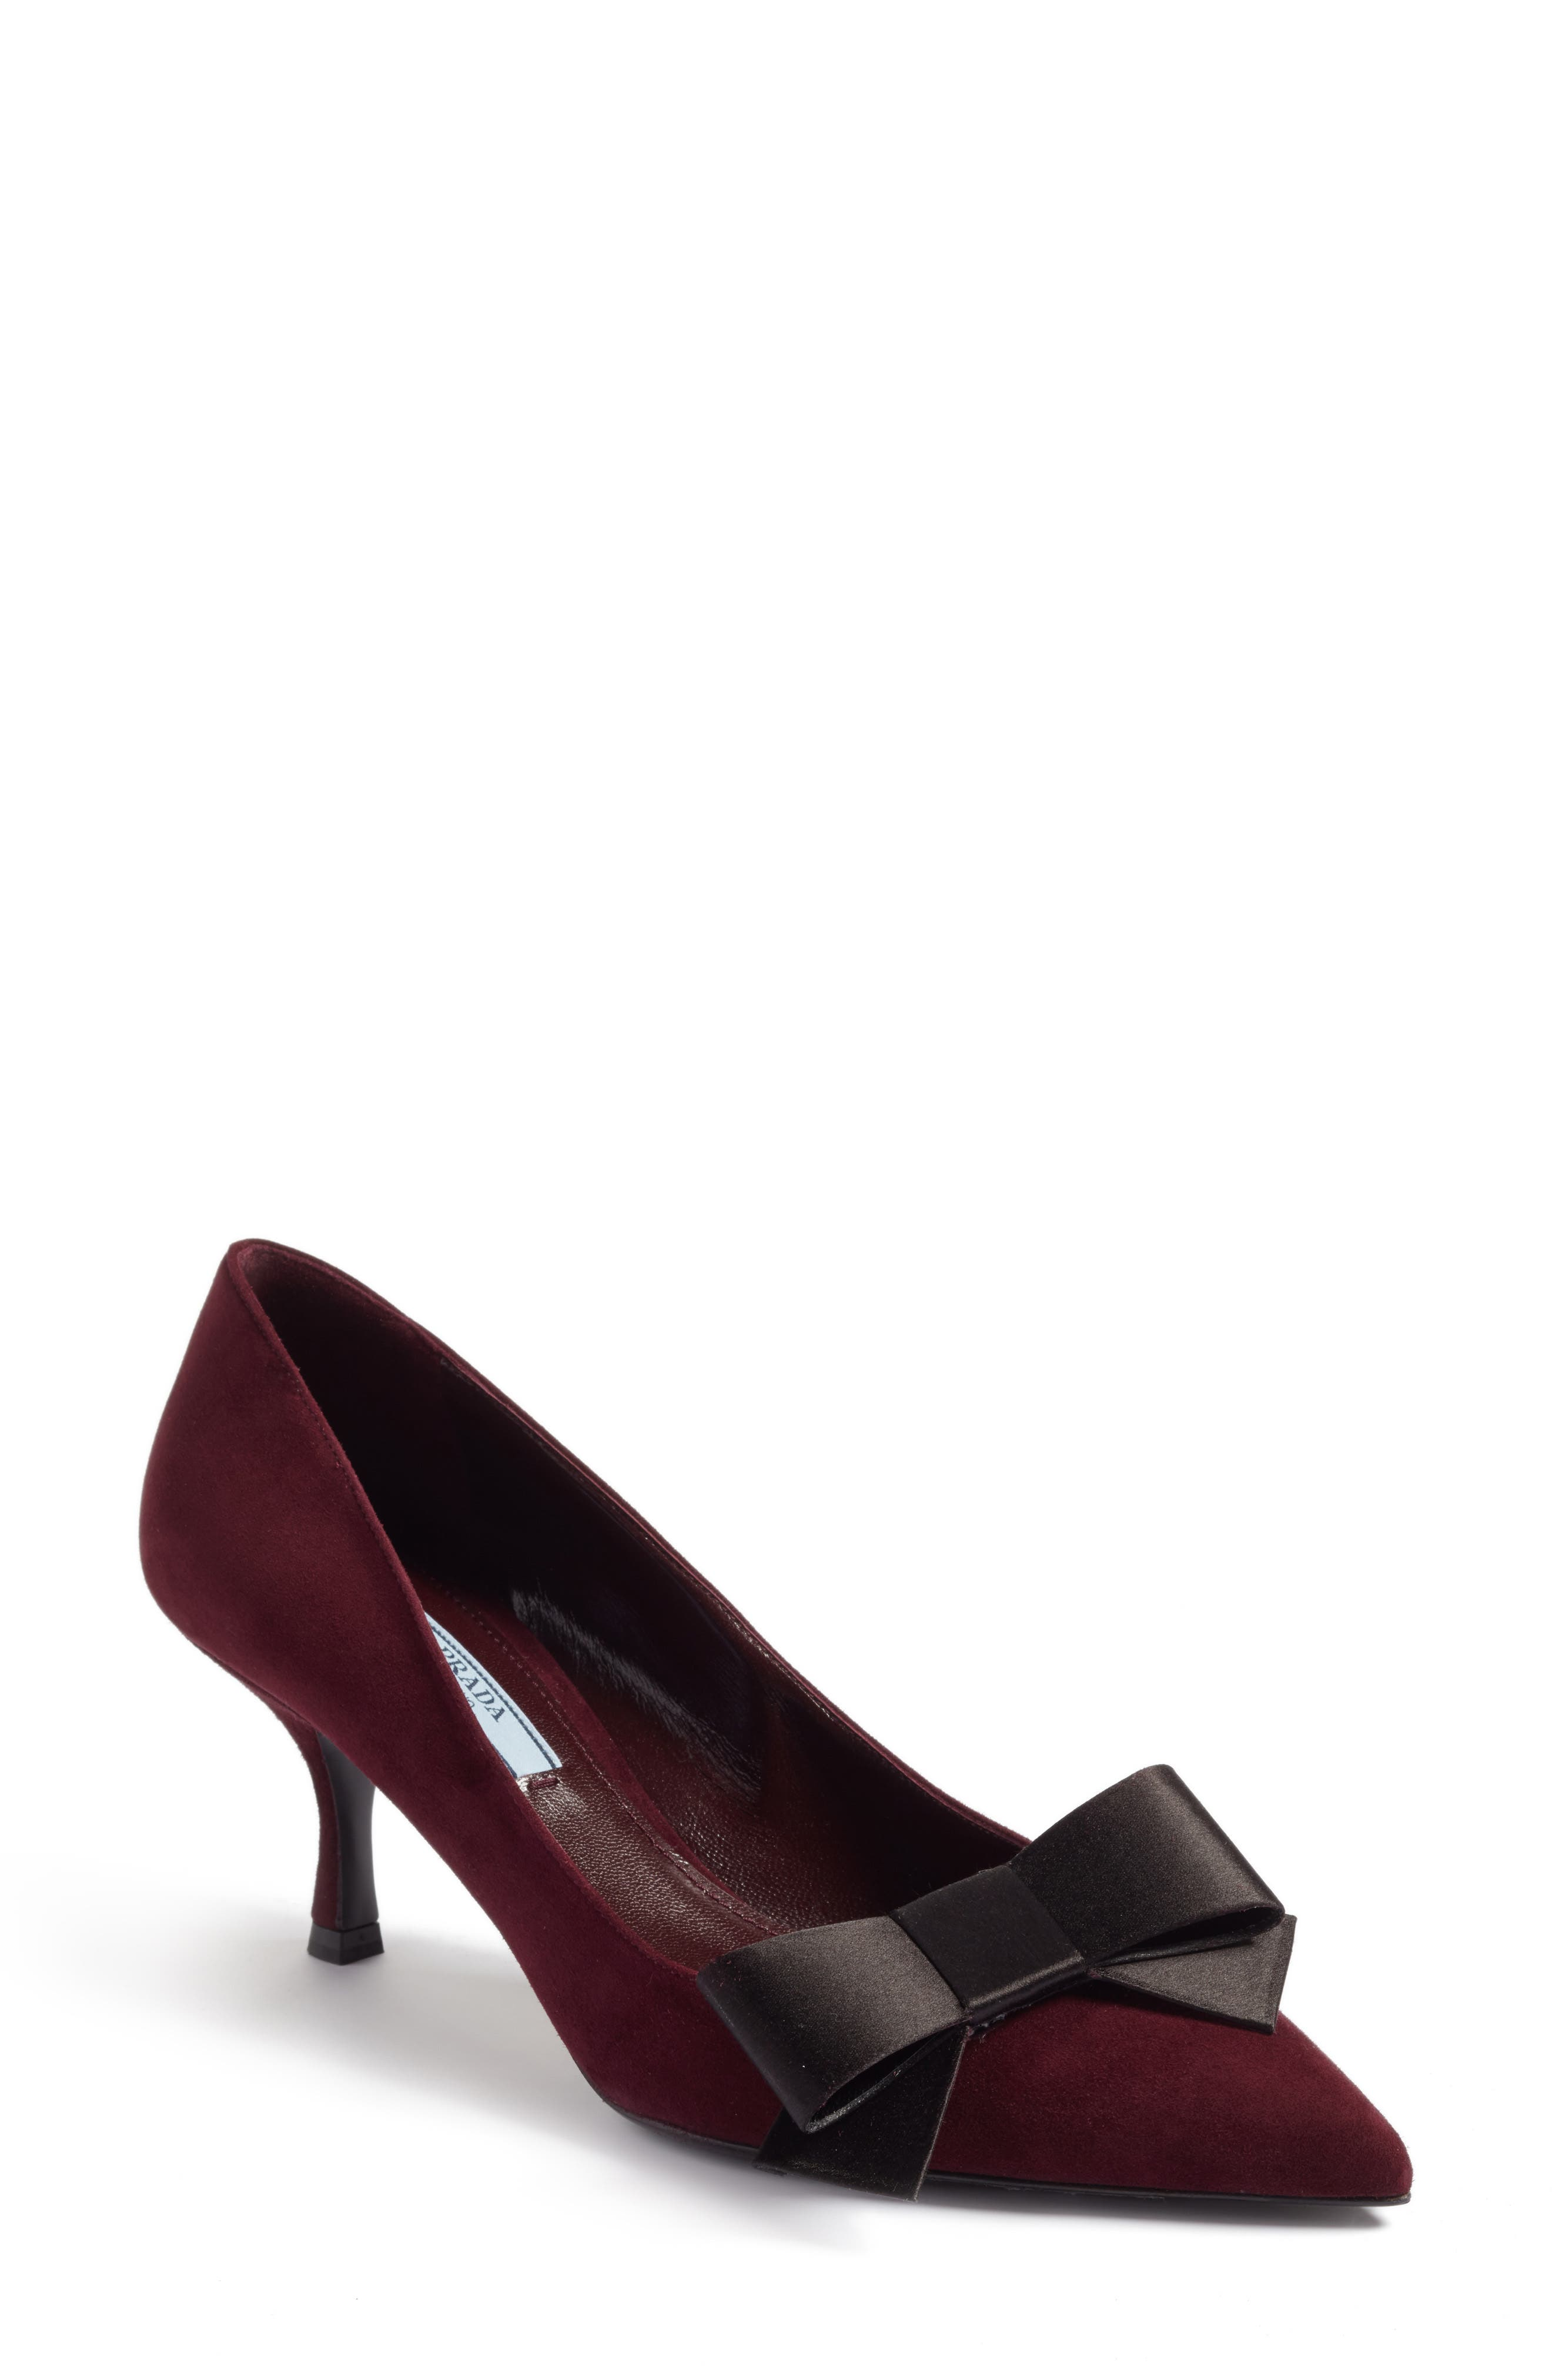 Alternate Image 1 Selected - Prada Bow Pointy Toe Pump (Women)